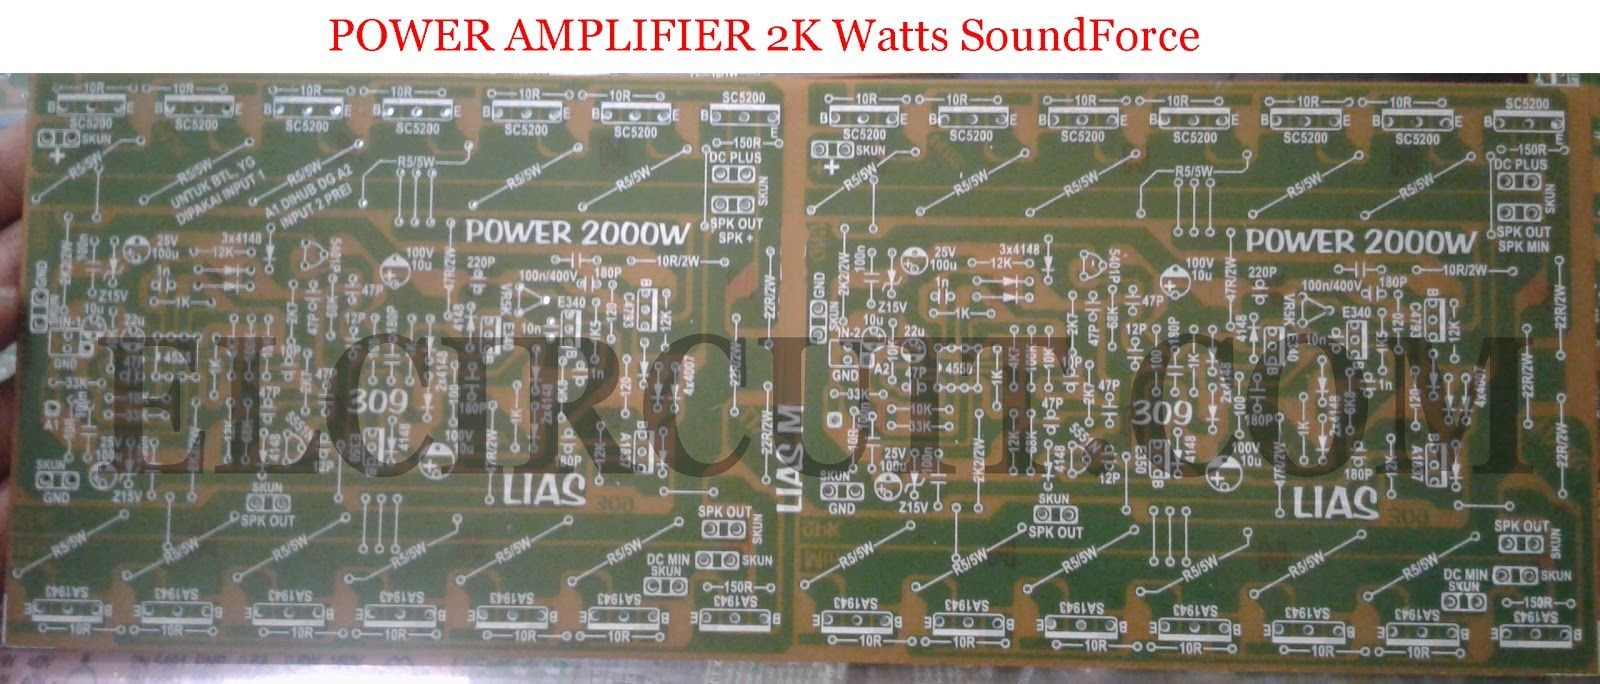 2000w Power Amplifier Circuit Diagram Vauxhall Corsa C Wiring Complete Pcb Layout Hubby Project Design For Top And Bottom Layer